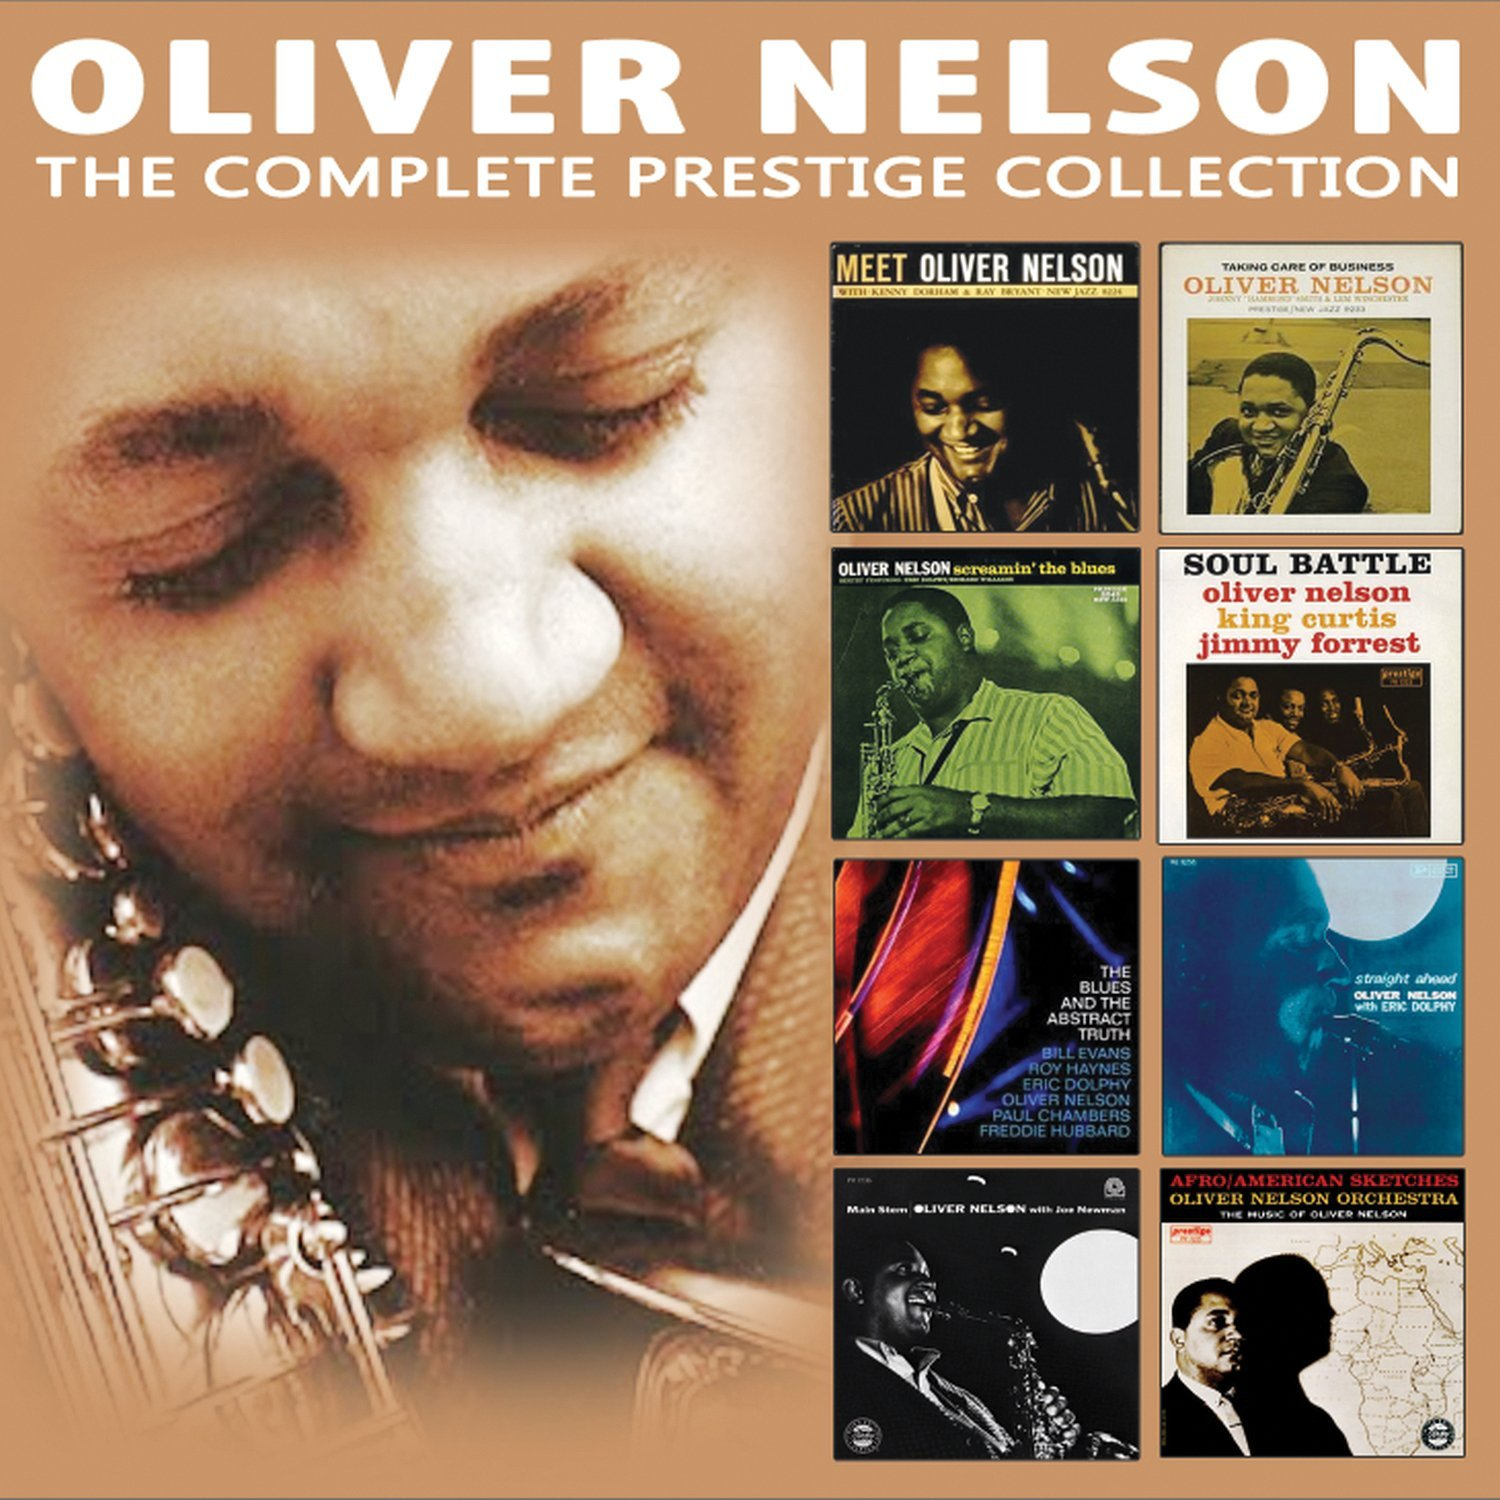 OLIVER NELSON - The Complete Prestige Collection cover